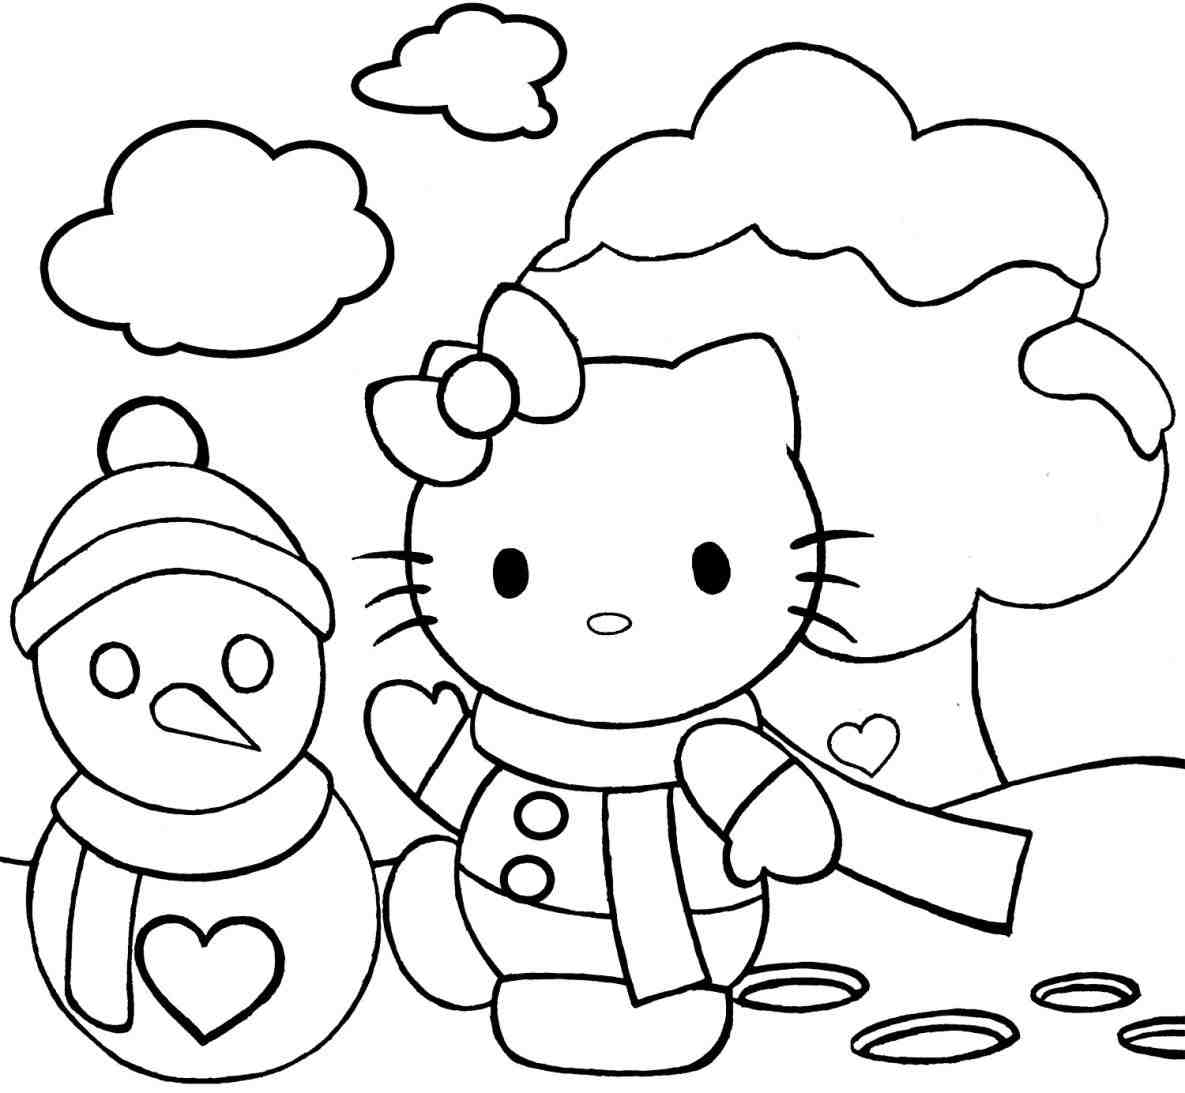 easy adult coloring pages - celeting christmas coloring pages printable